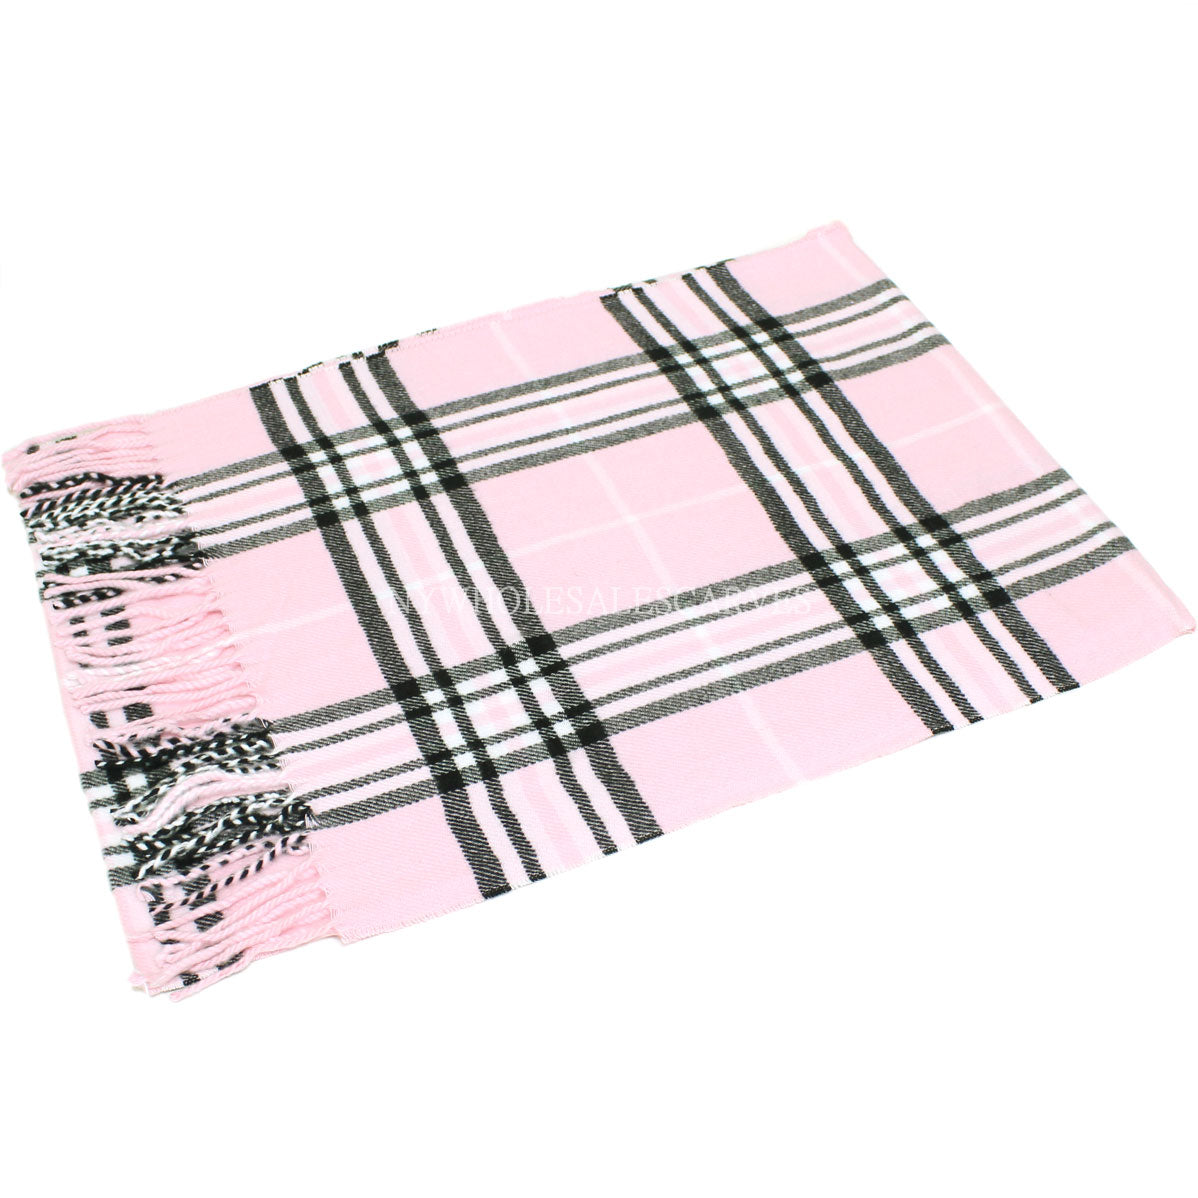 Giant Check Scarf FW07-13 Pink